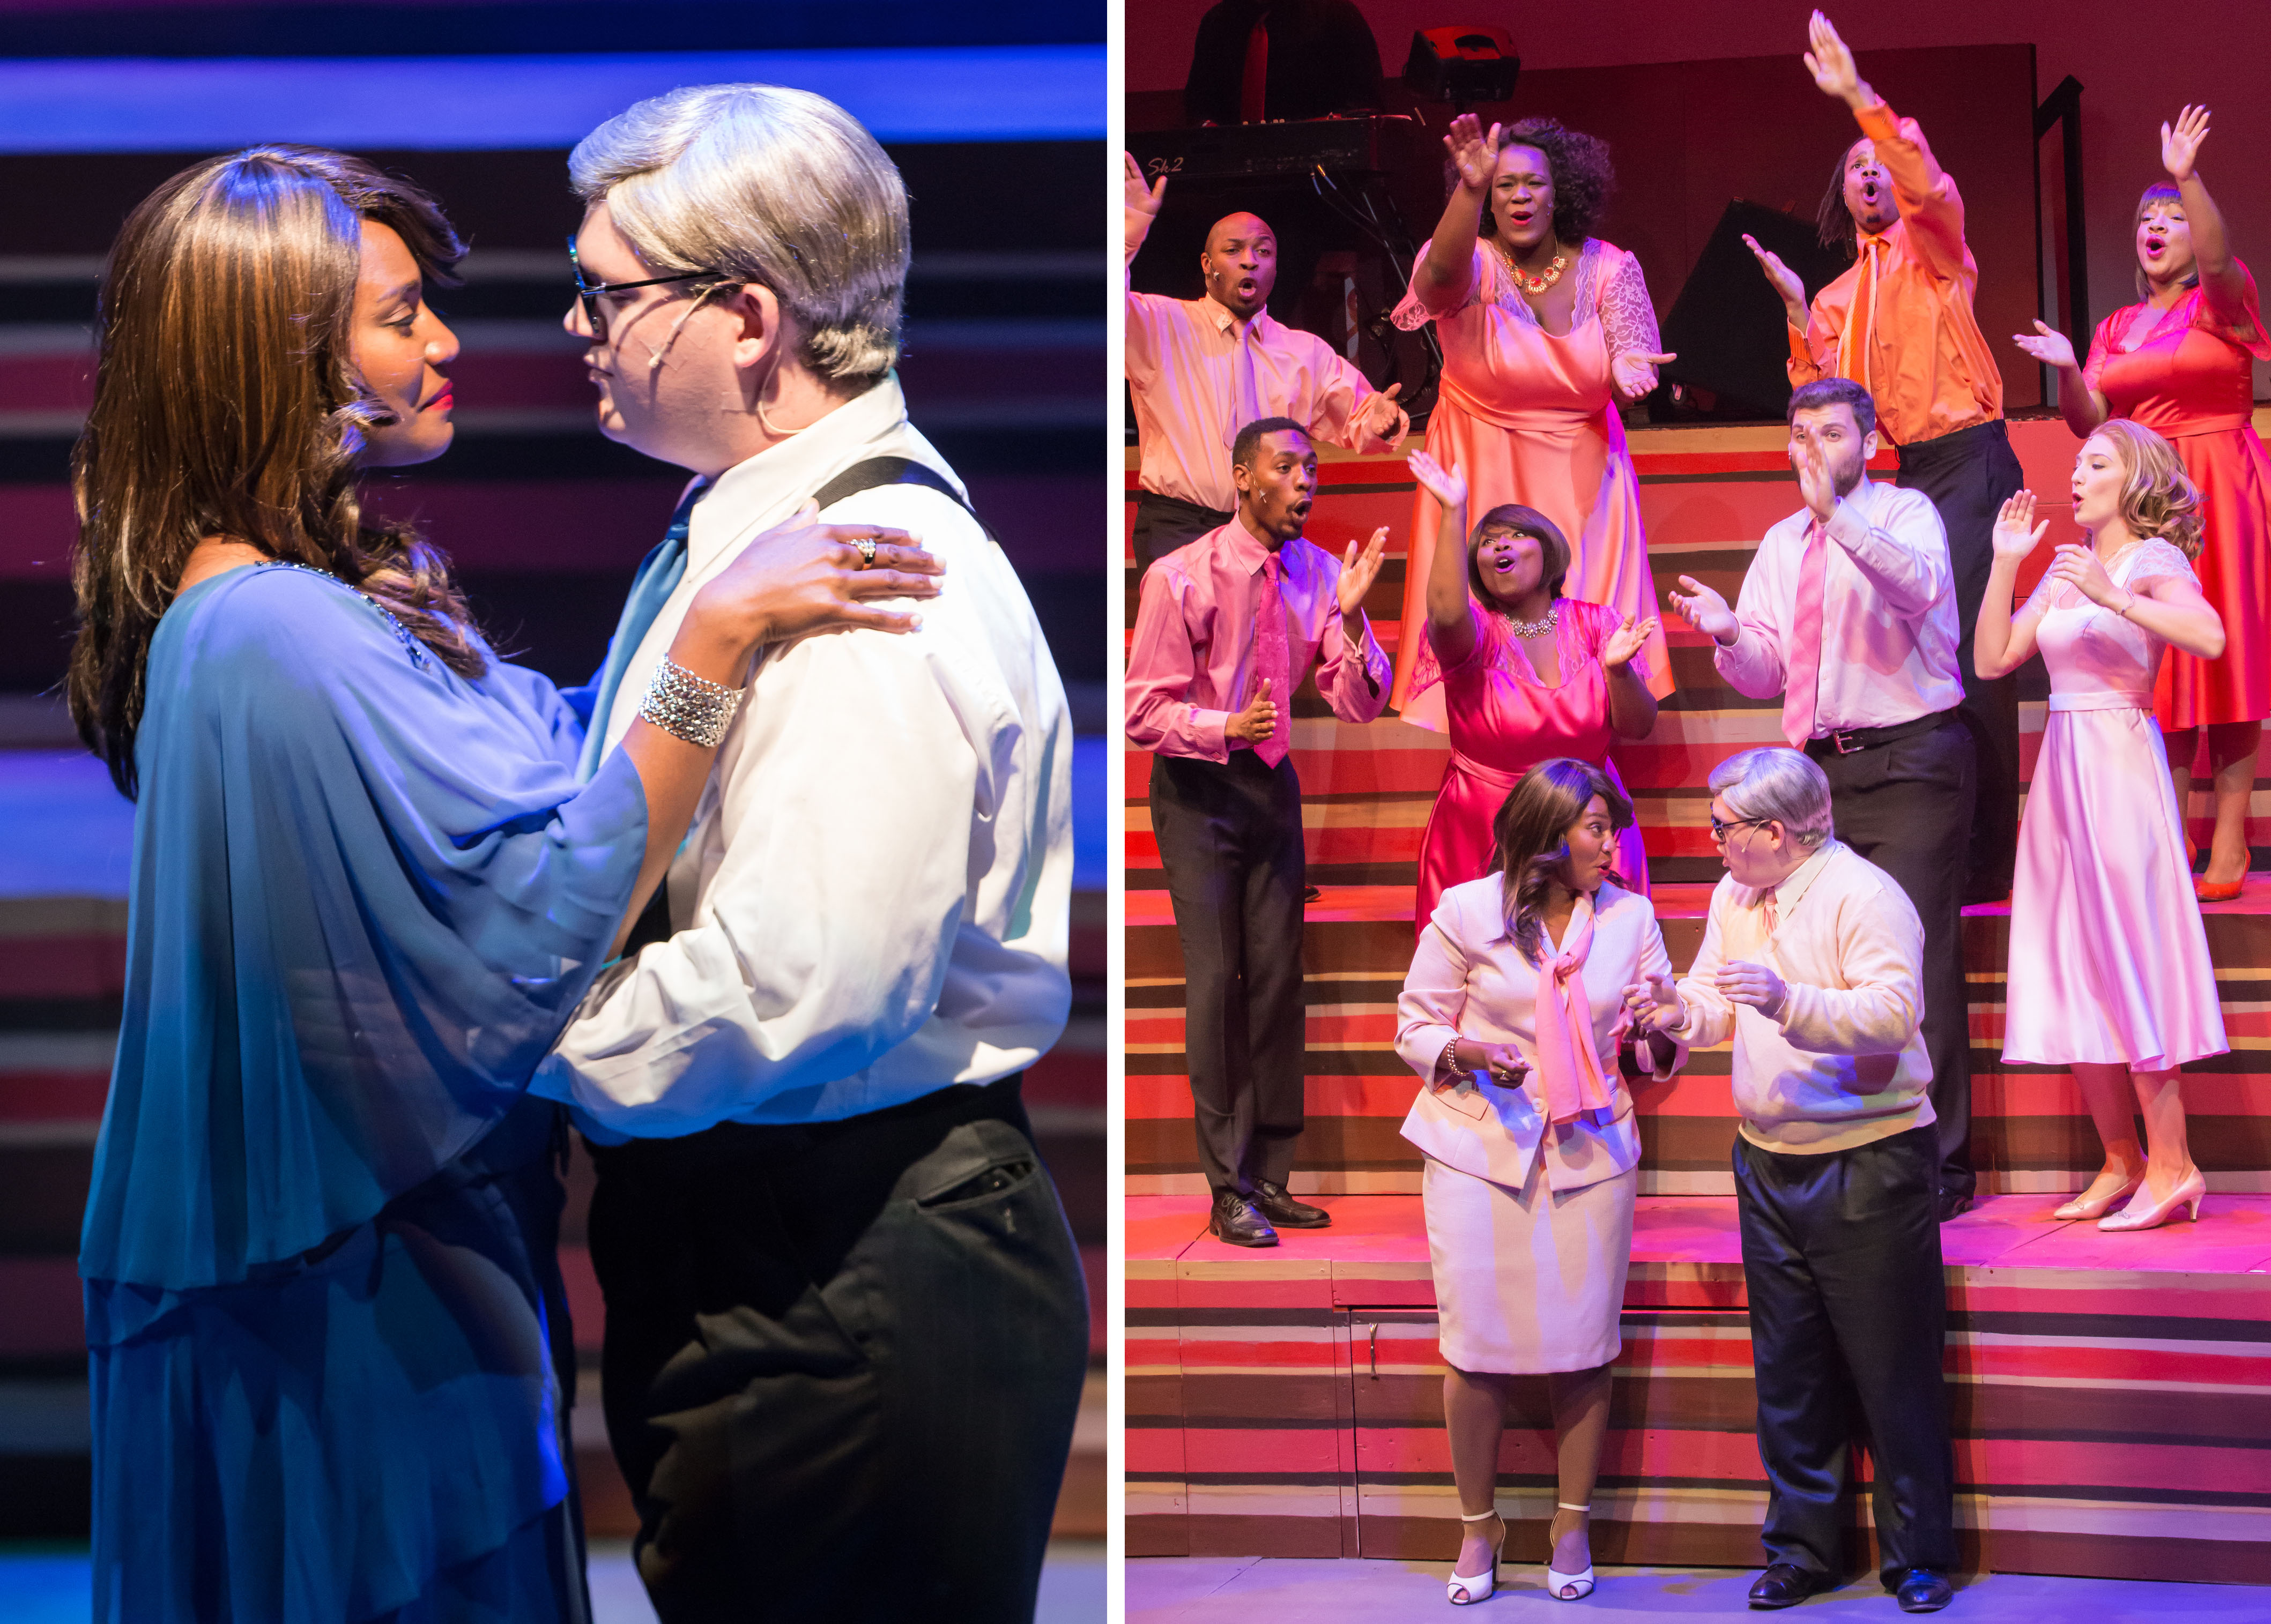 Roger and Chaz Ebert's love story comes to life in The BlackWhite Love Play